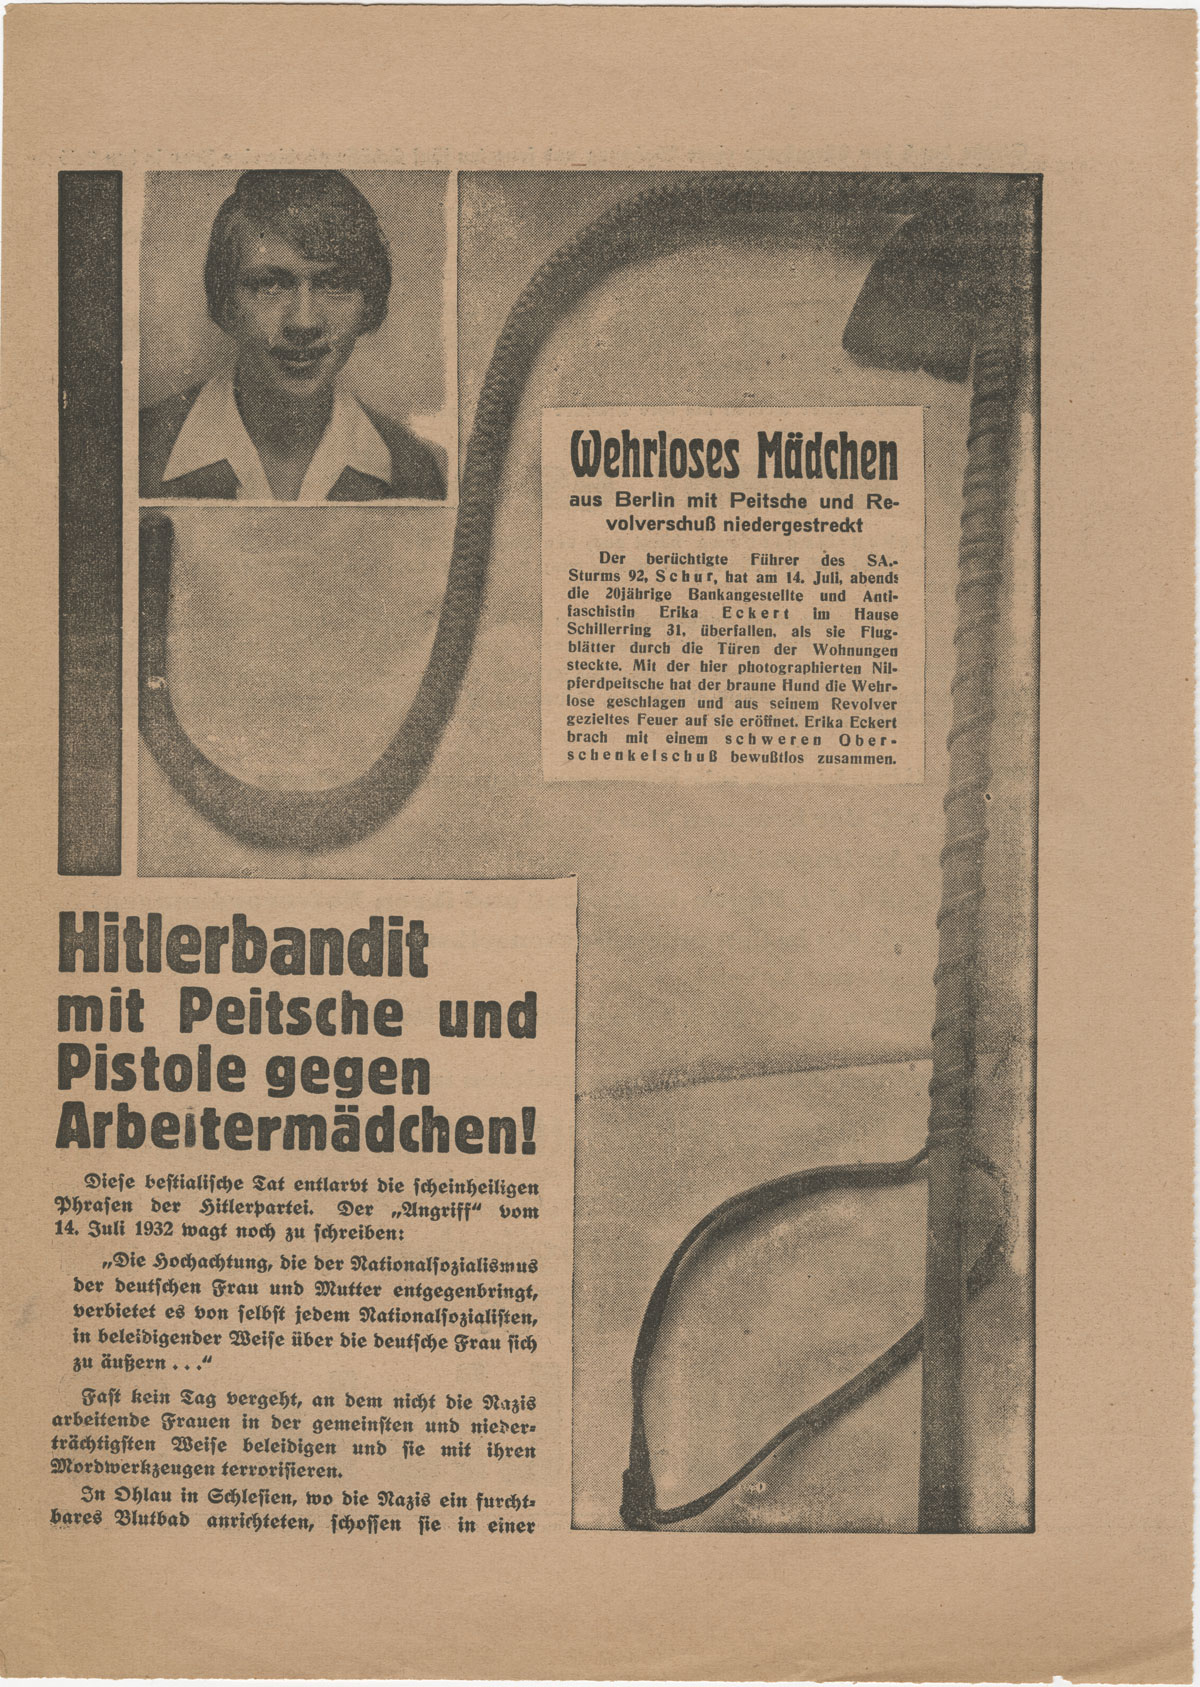 From the 1932 German elections ephemera collection. Communist leaflet describing the non-lethal shooting by a Nazi SA leader of a young woman distributing antifascist leaflets at Schillering 31 in Berlin.